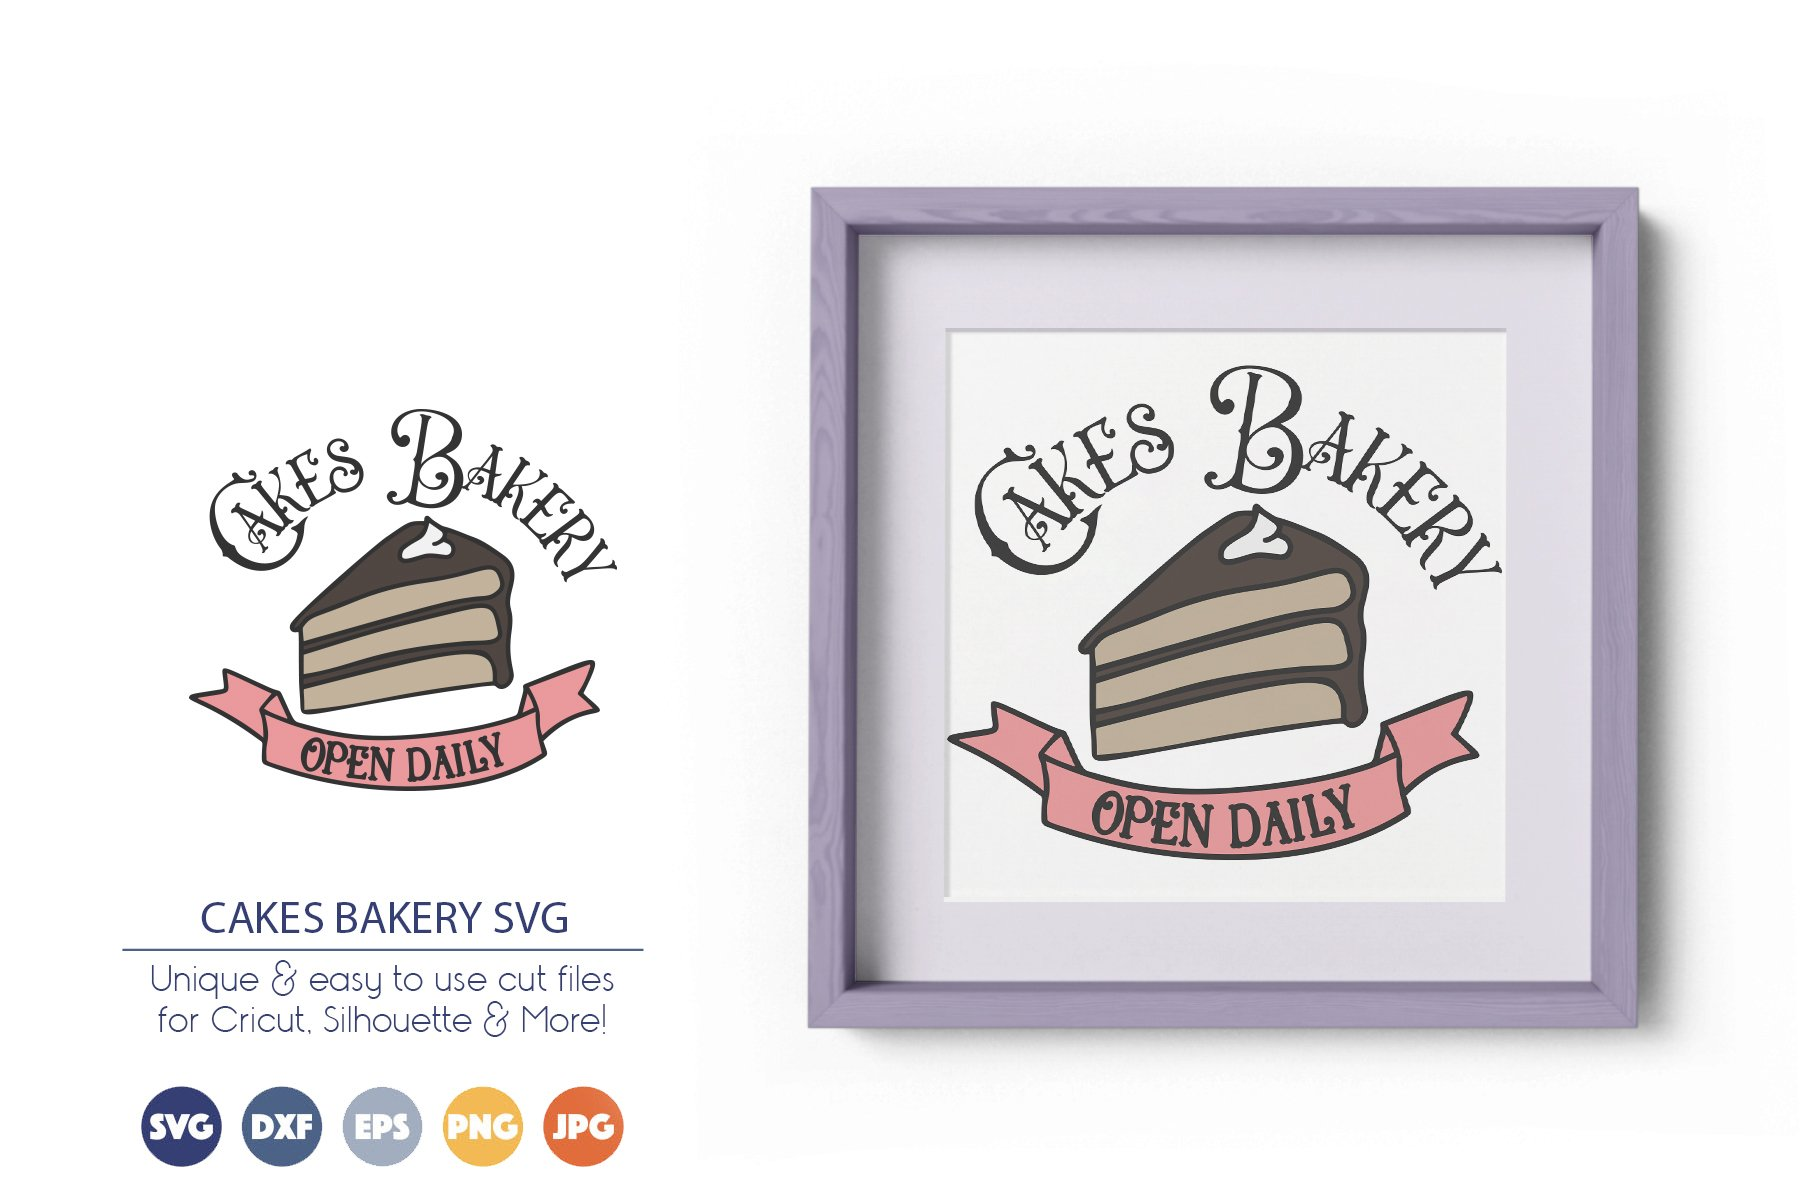 Cakes Bakery SVG | Kitchen Sign SVG example image 1